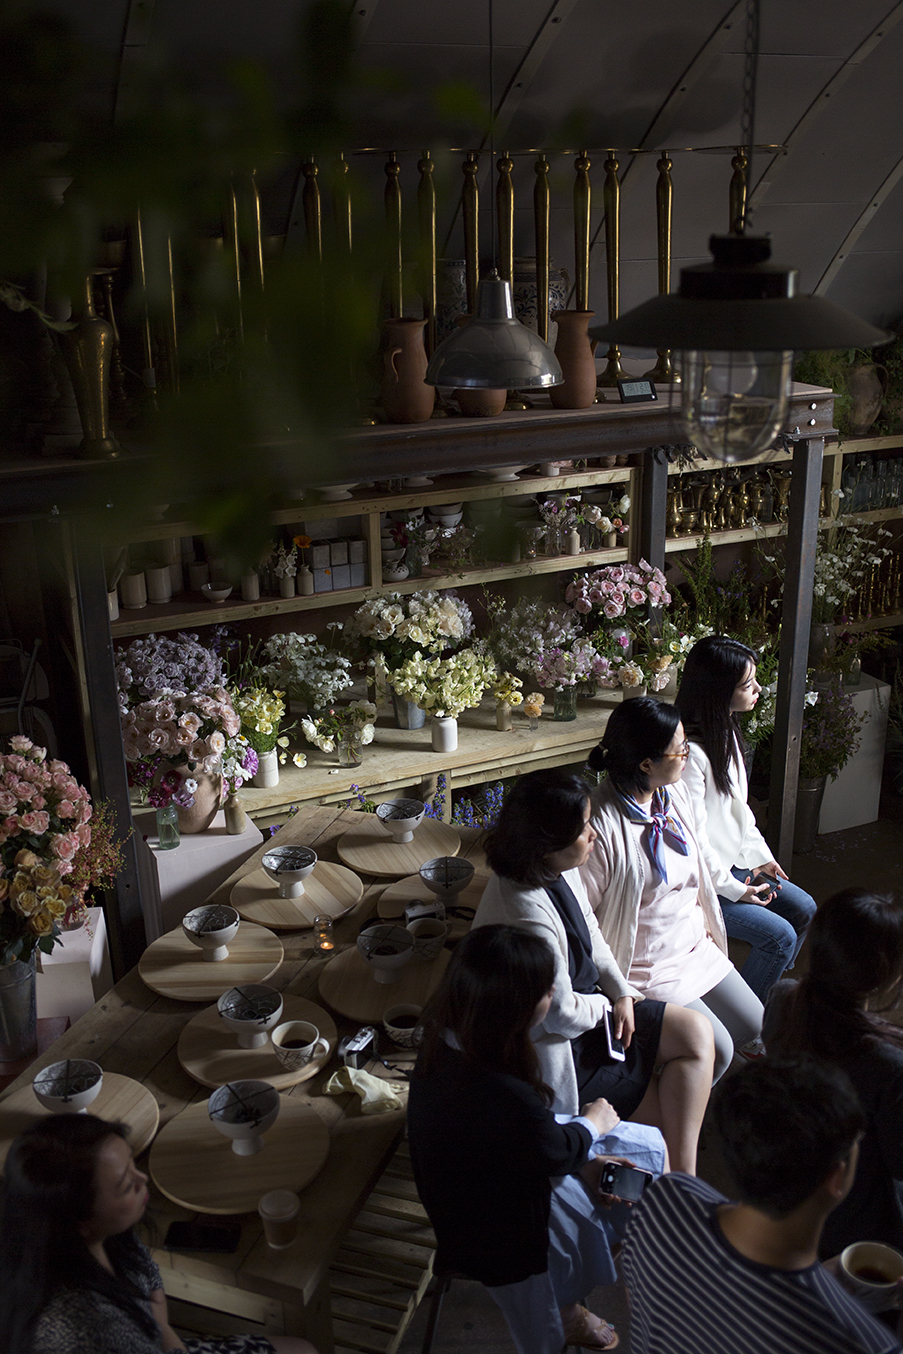 During each class, students watch a demonstration, during which we explain our design process alongside the practical techniques for each arrangement